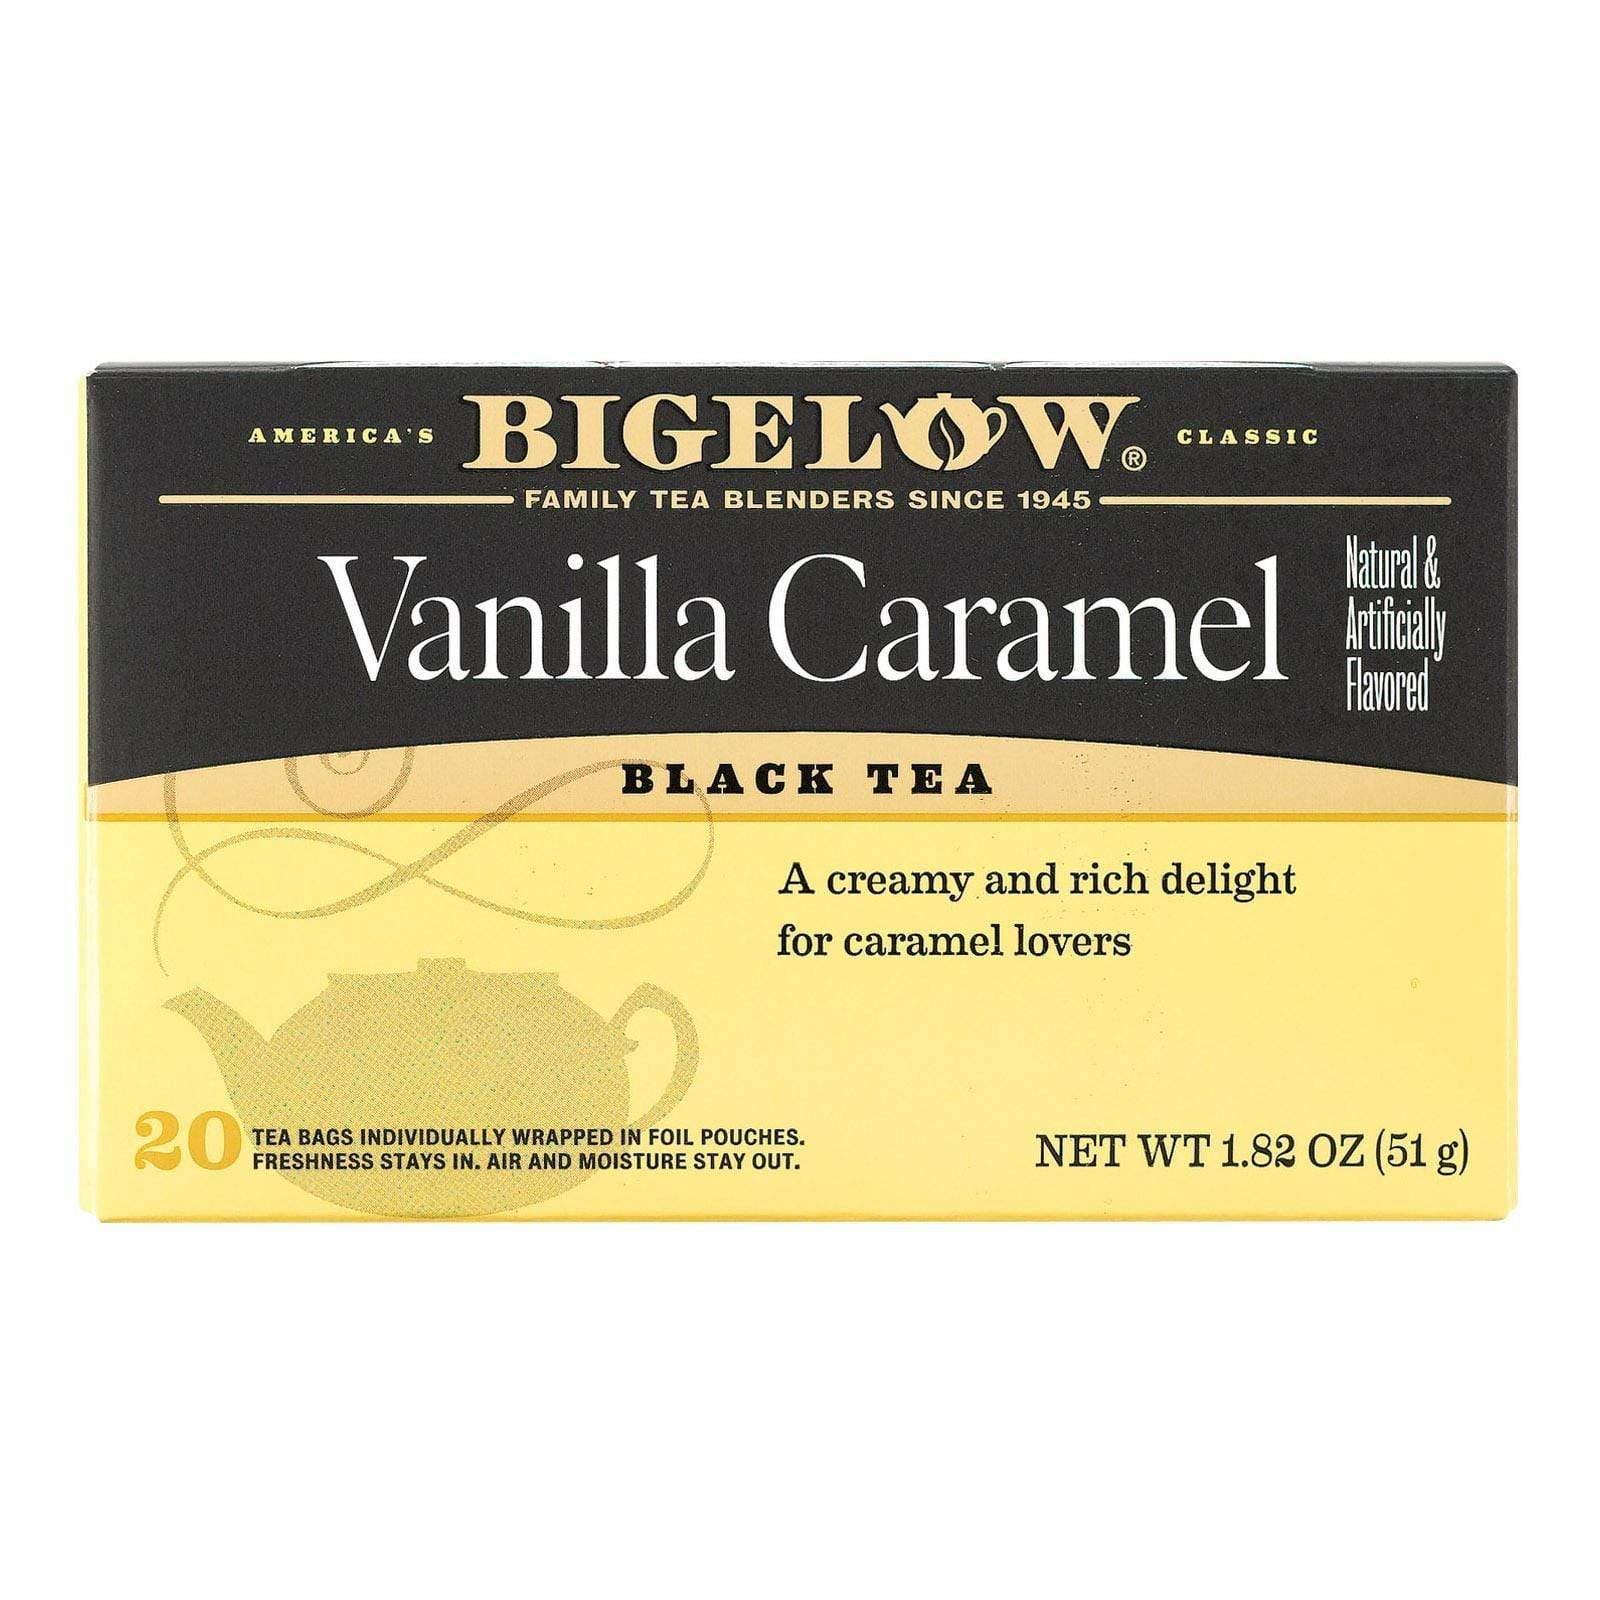 Bigelow Tea Teas, Coffee & Energy drinks Bigelow Tea Vanilla Caramel Black Tea - Case Of 6 - 20 Bags